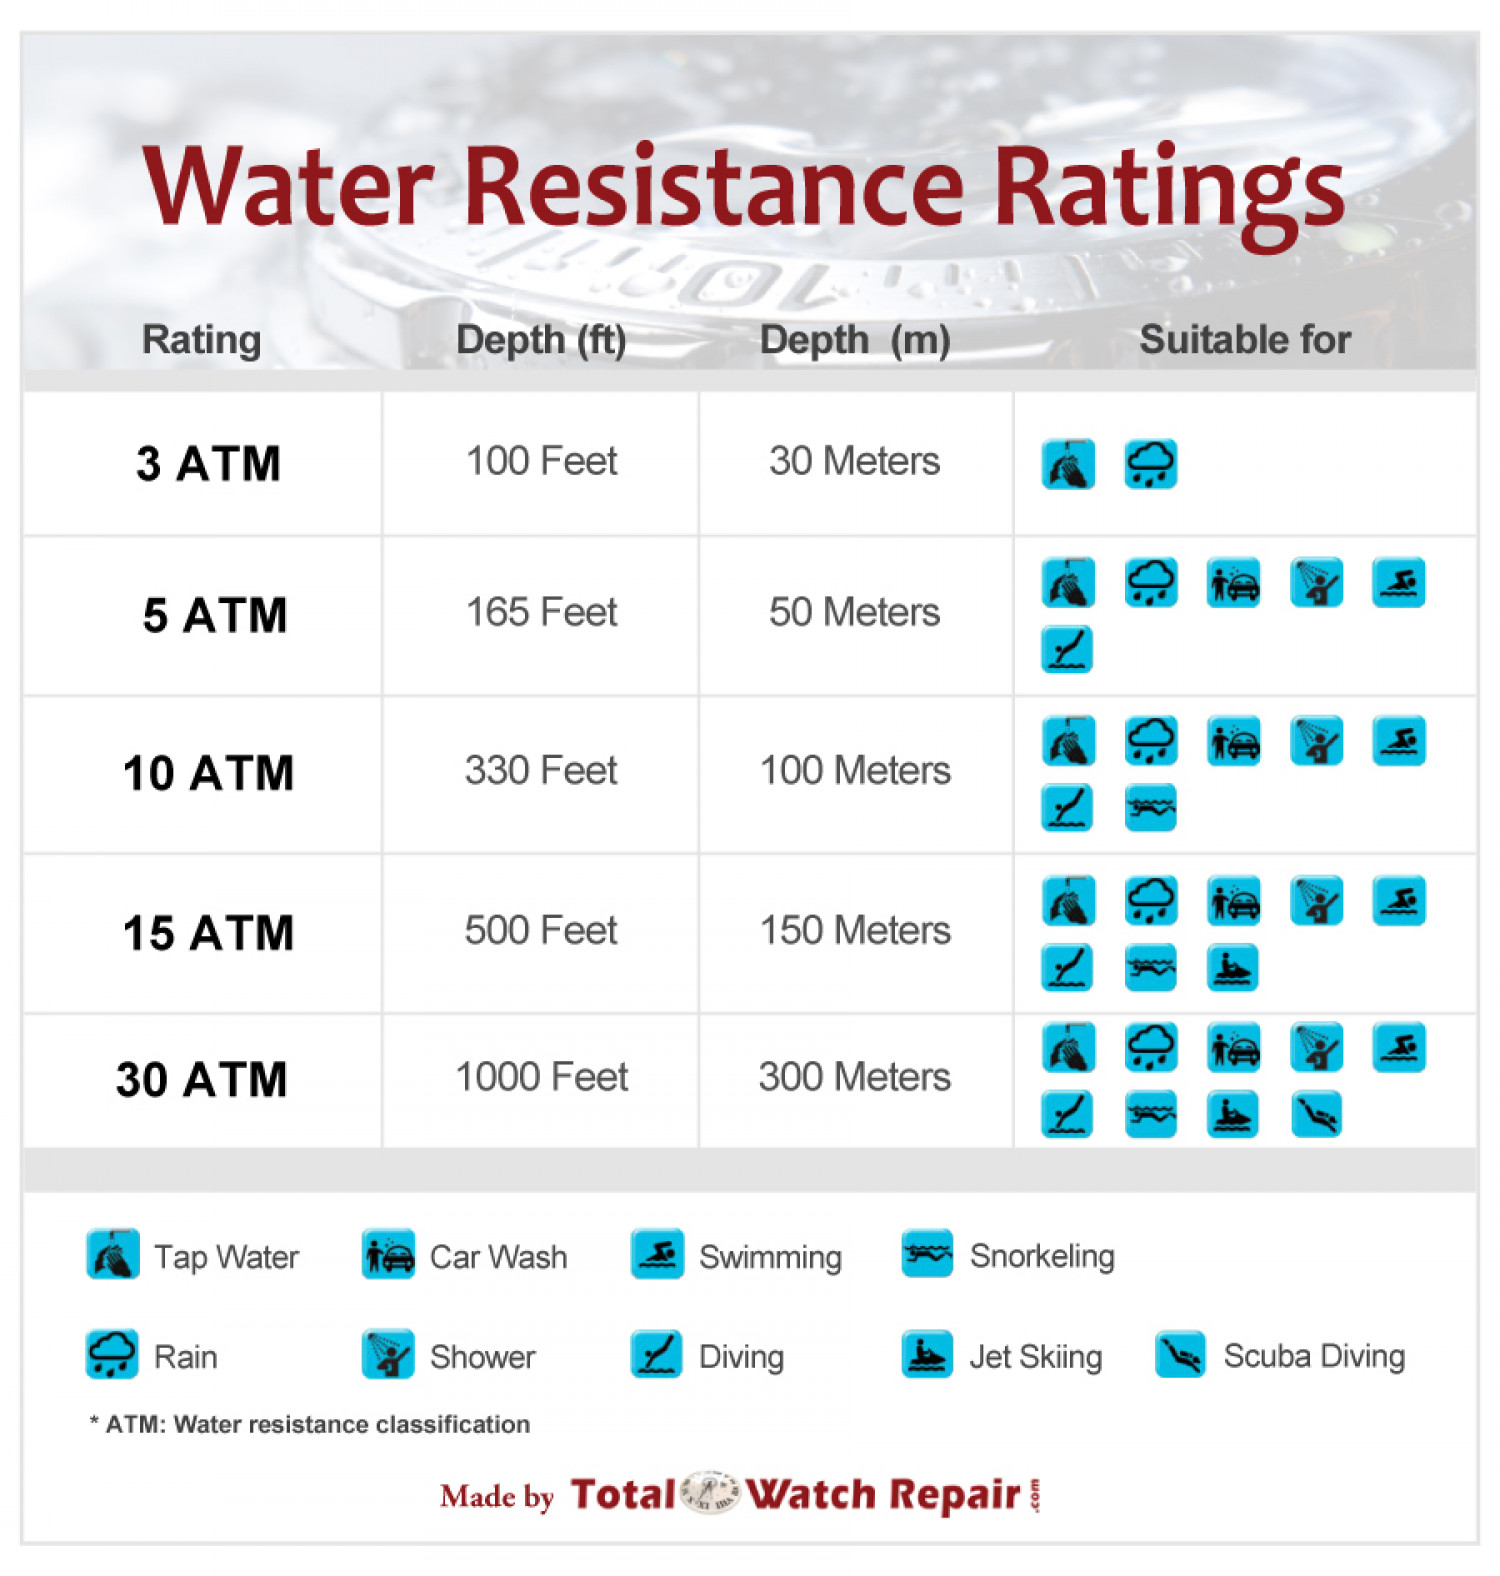 Water Resistance Ratings Infographic